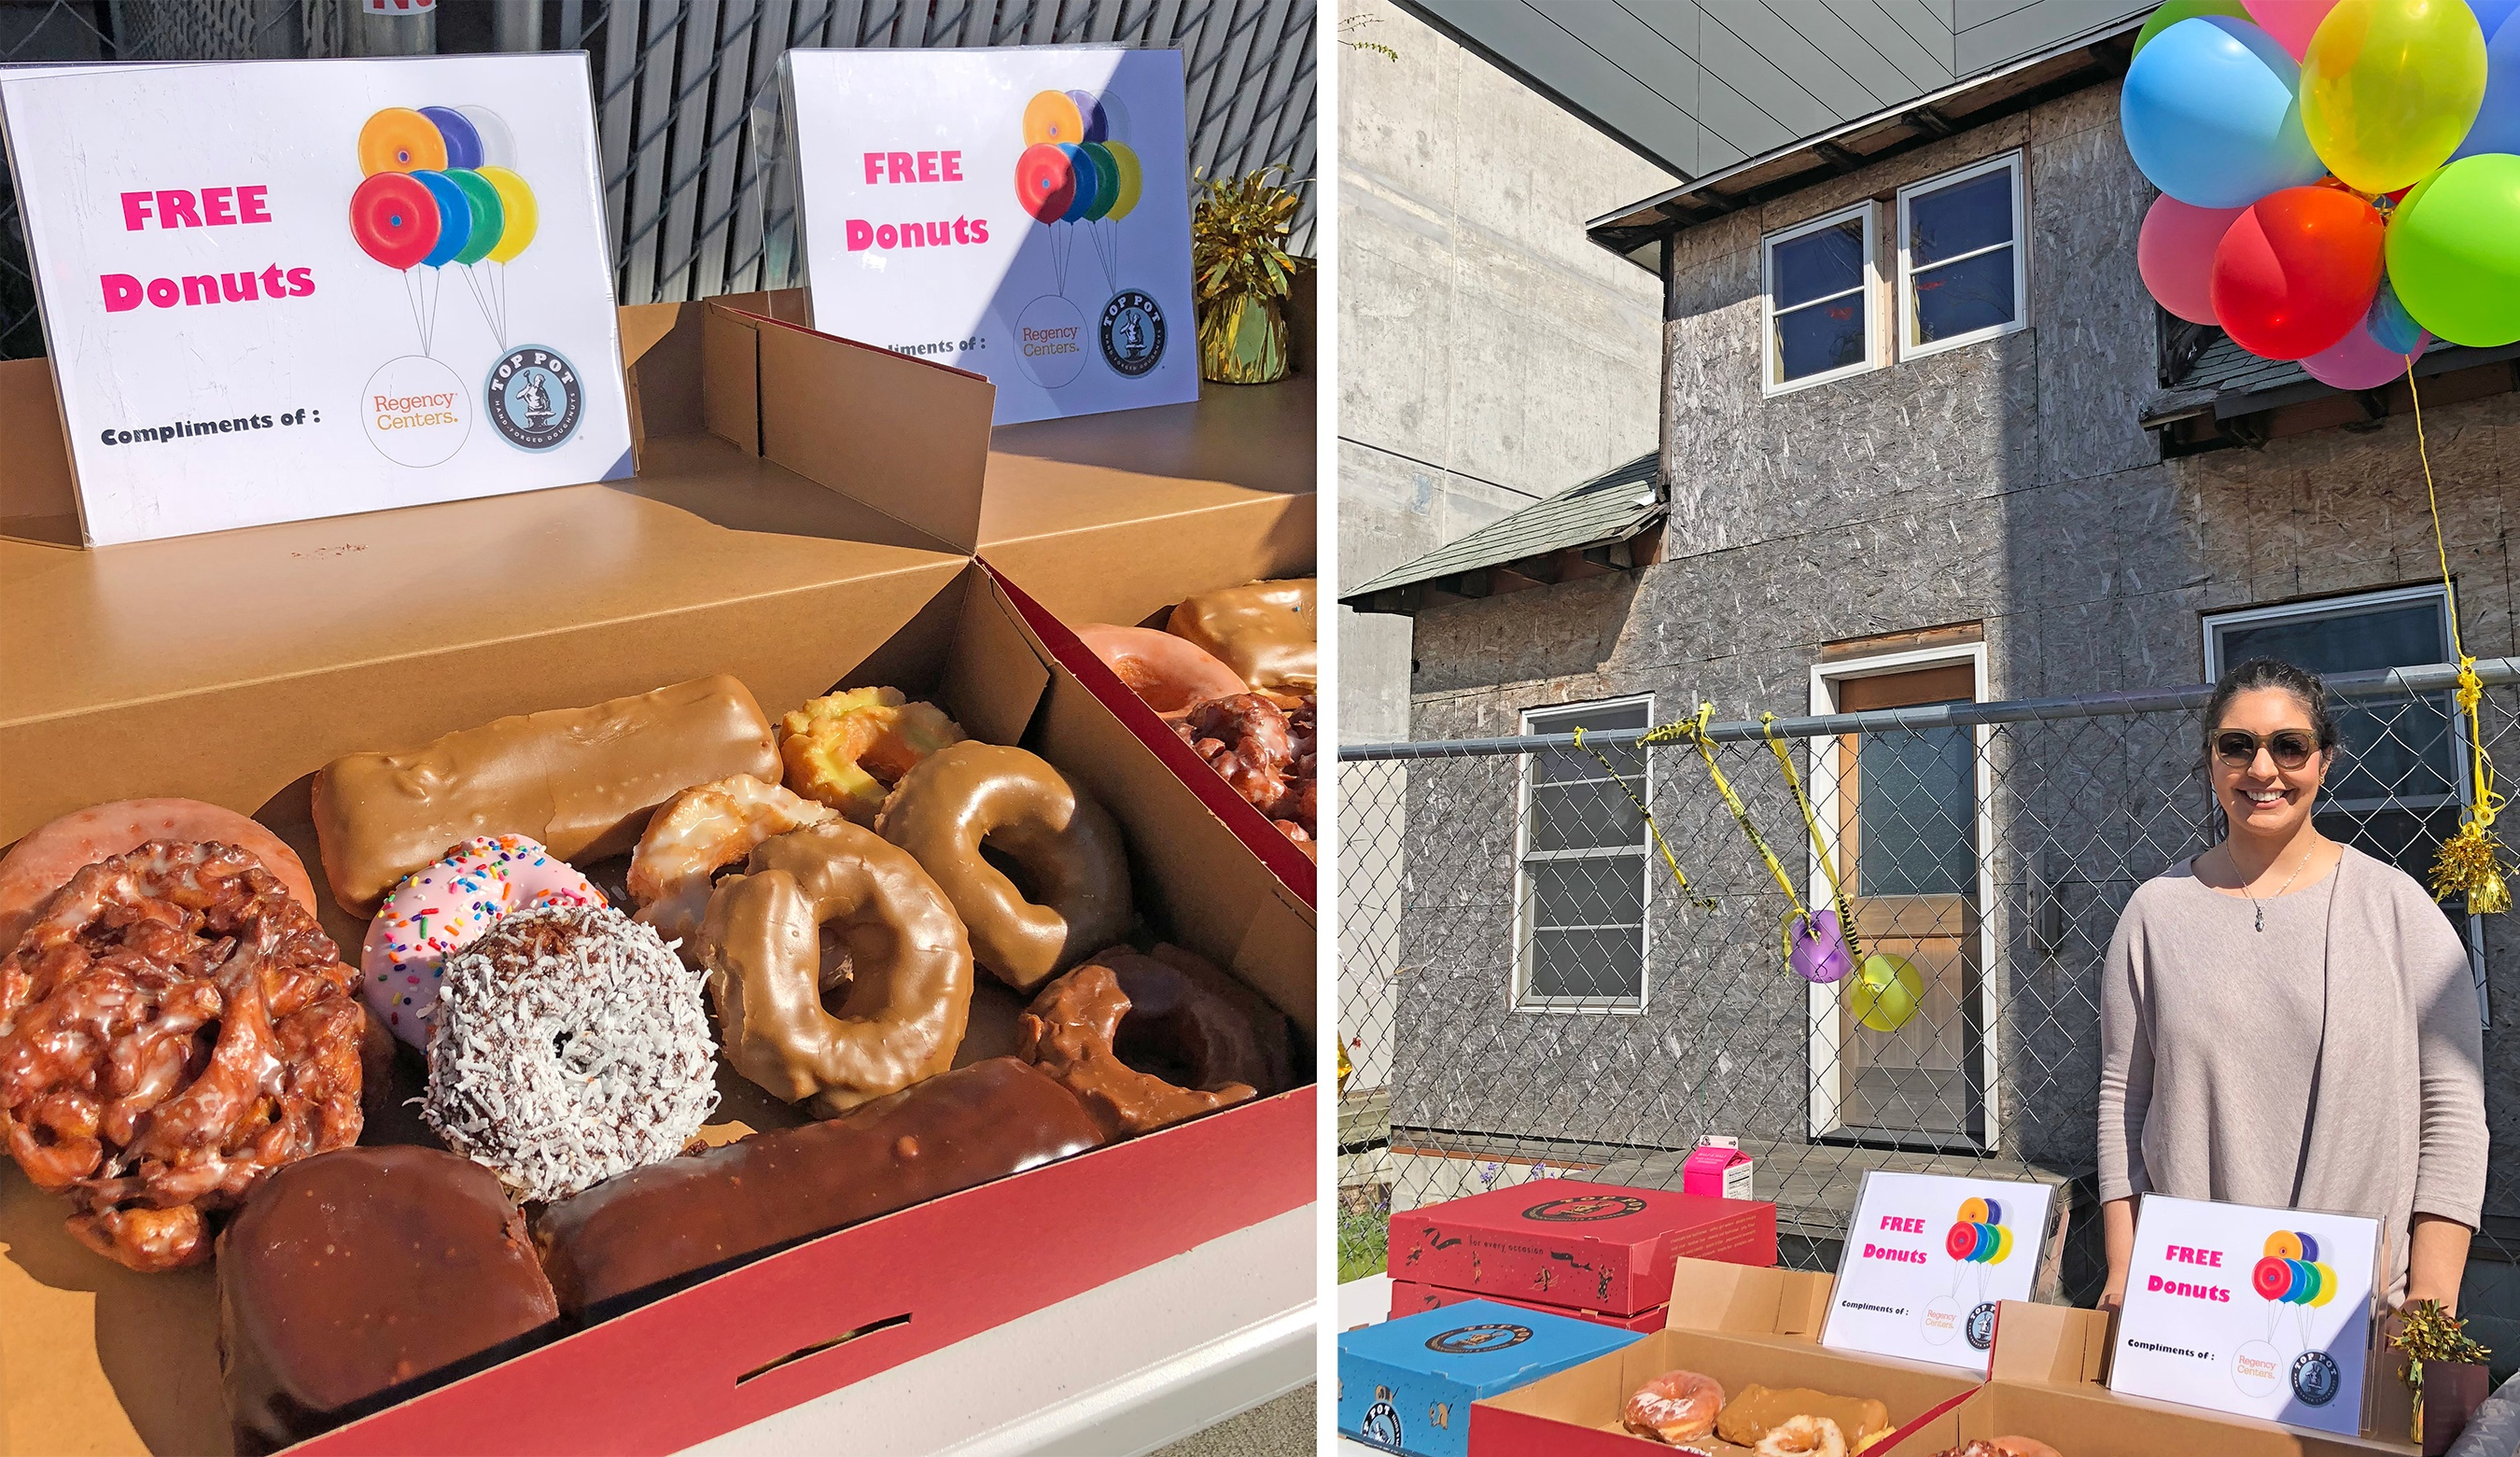 Images of free donuts on display at the event.